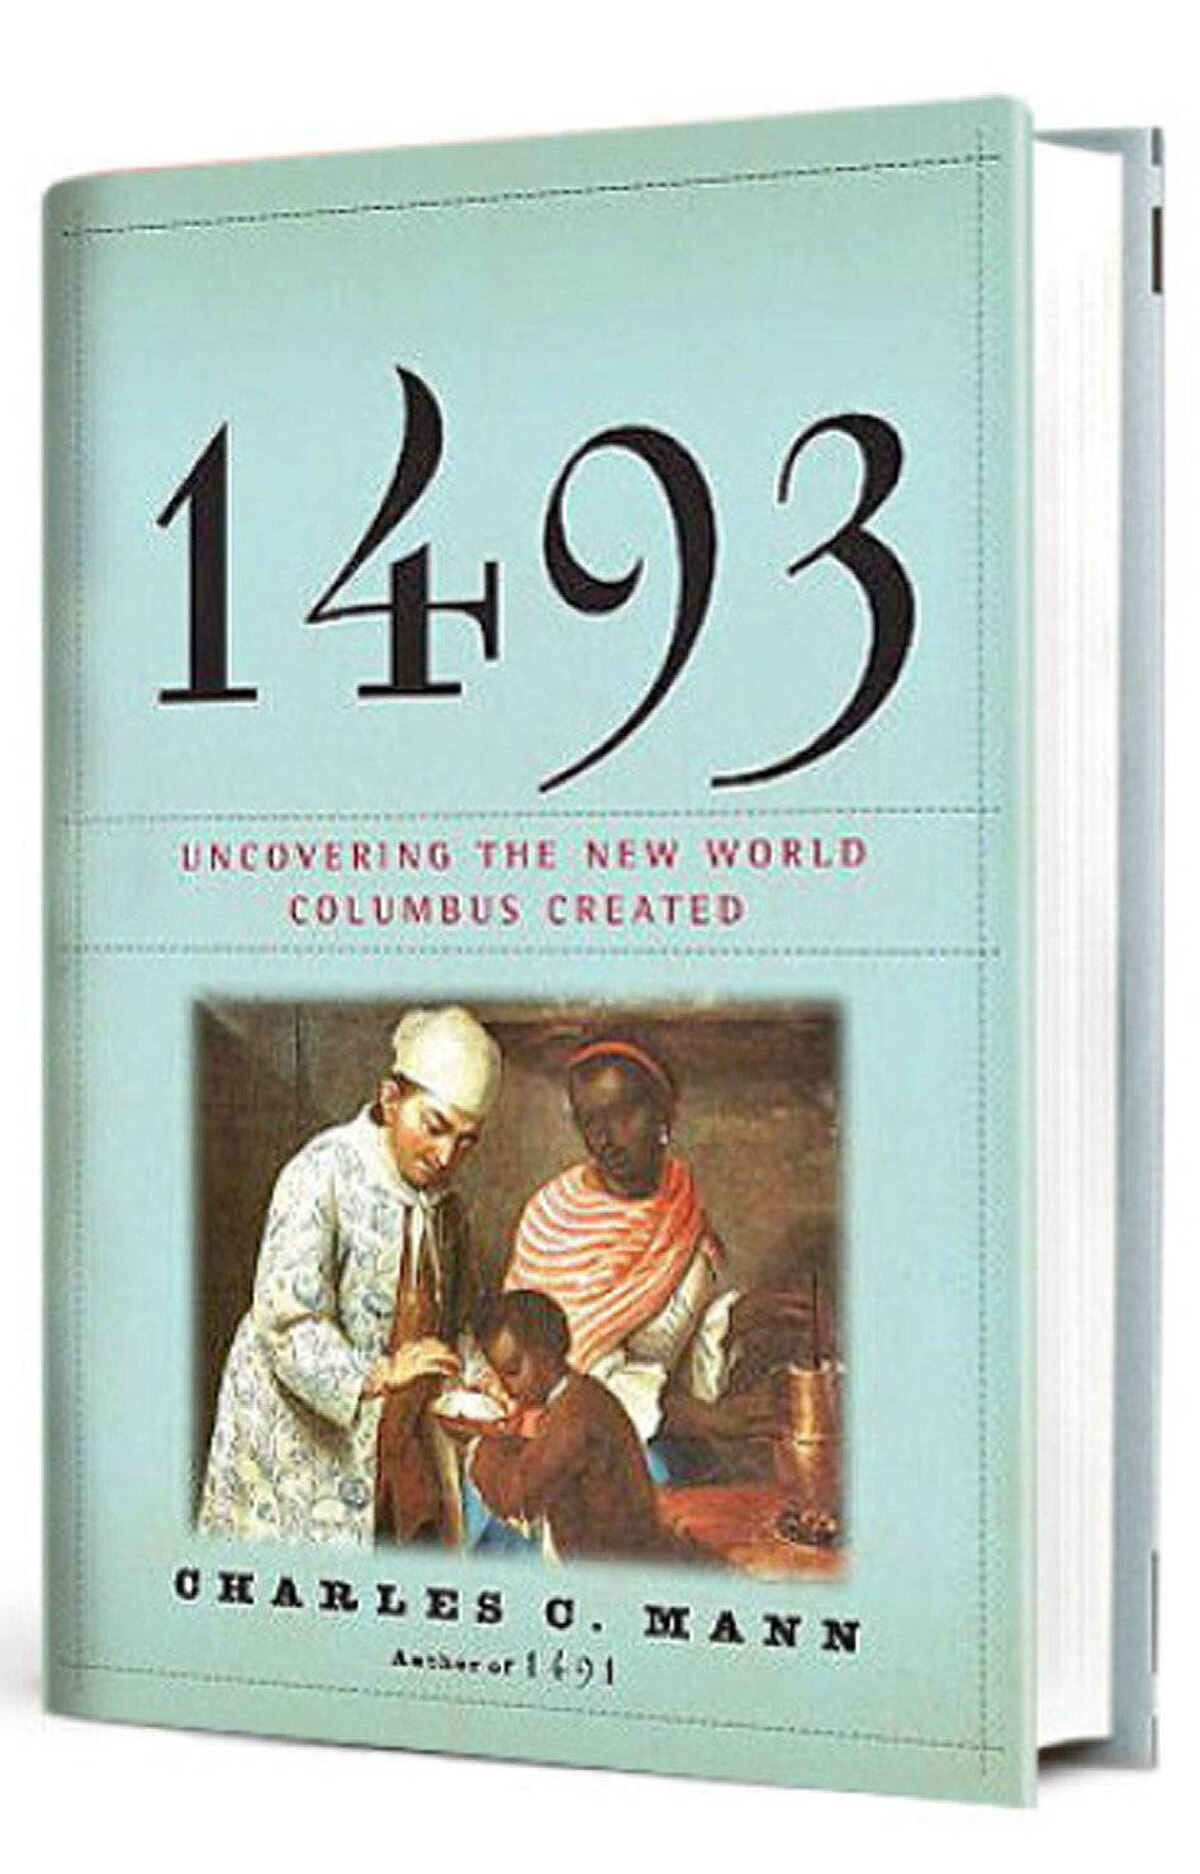 1493 If there's a reader on your list who's left cold by the latest novels but loves to feast on facts, Charles C. Mann's 1493 is an especially rich offering: an accessible and original world history describing the origins of globalization in the massive exchanges of crops, diseases, minerals and people that followed Columbus's journey to the New World. $34.50 at randomhouse.ca